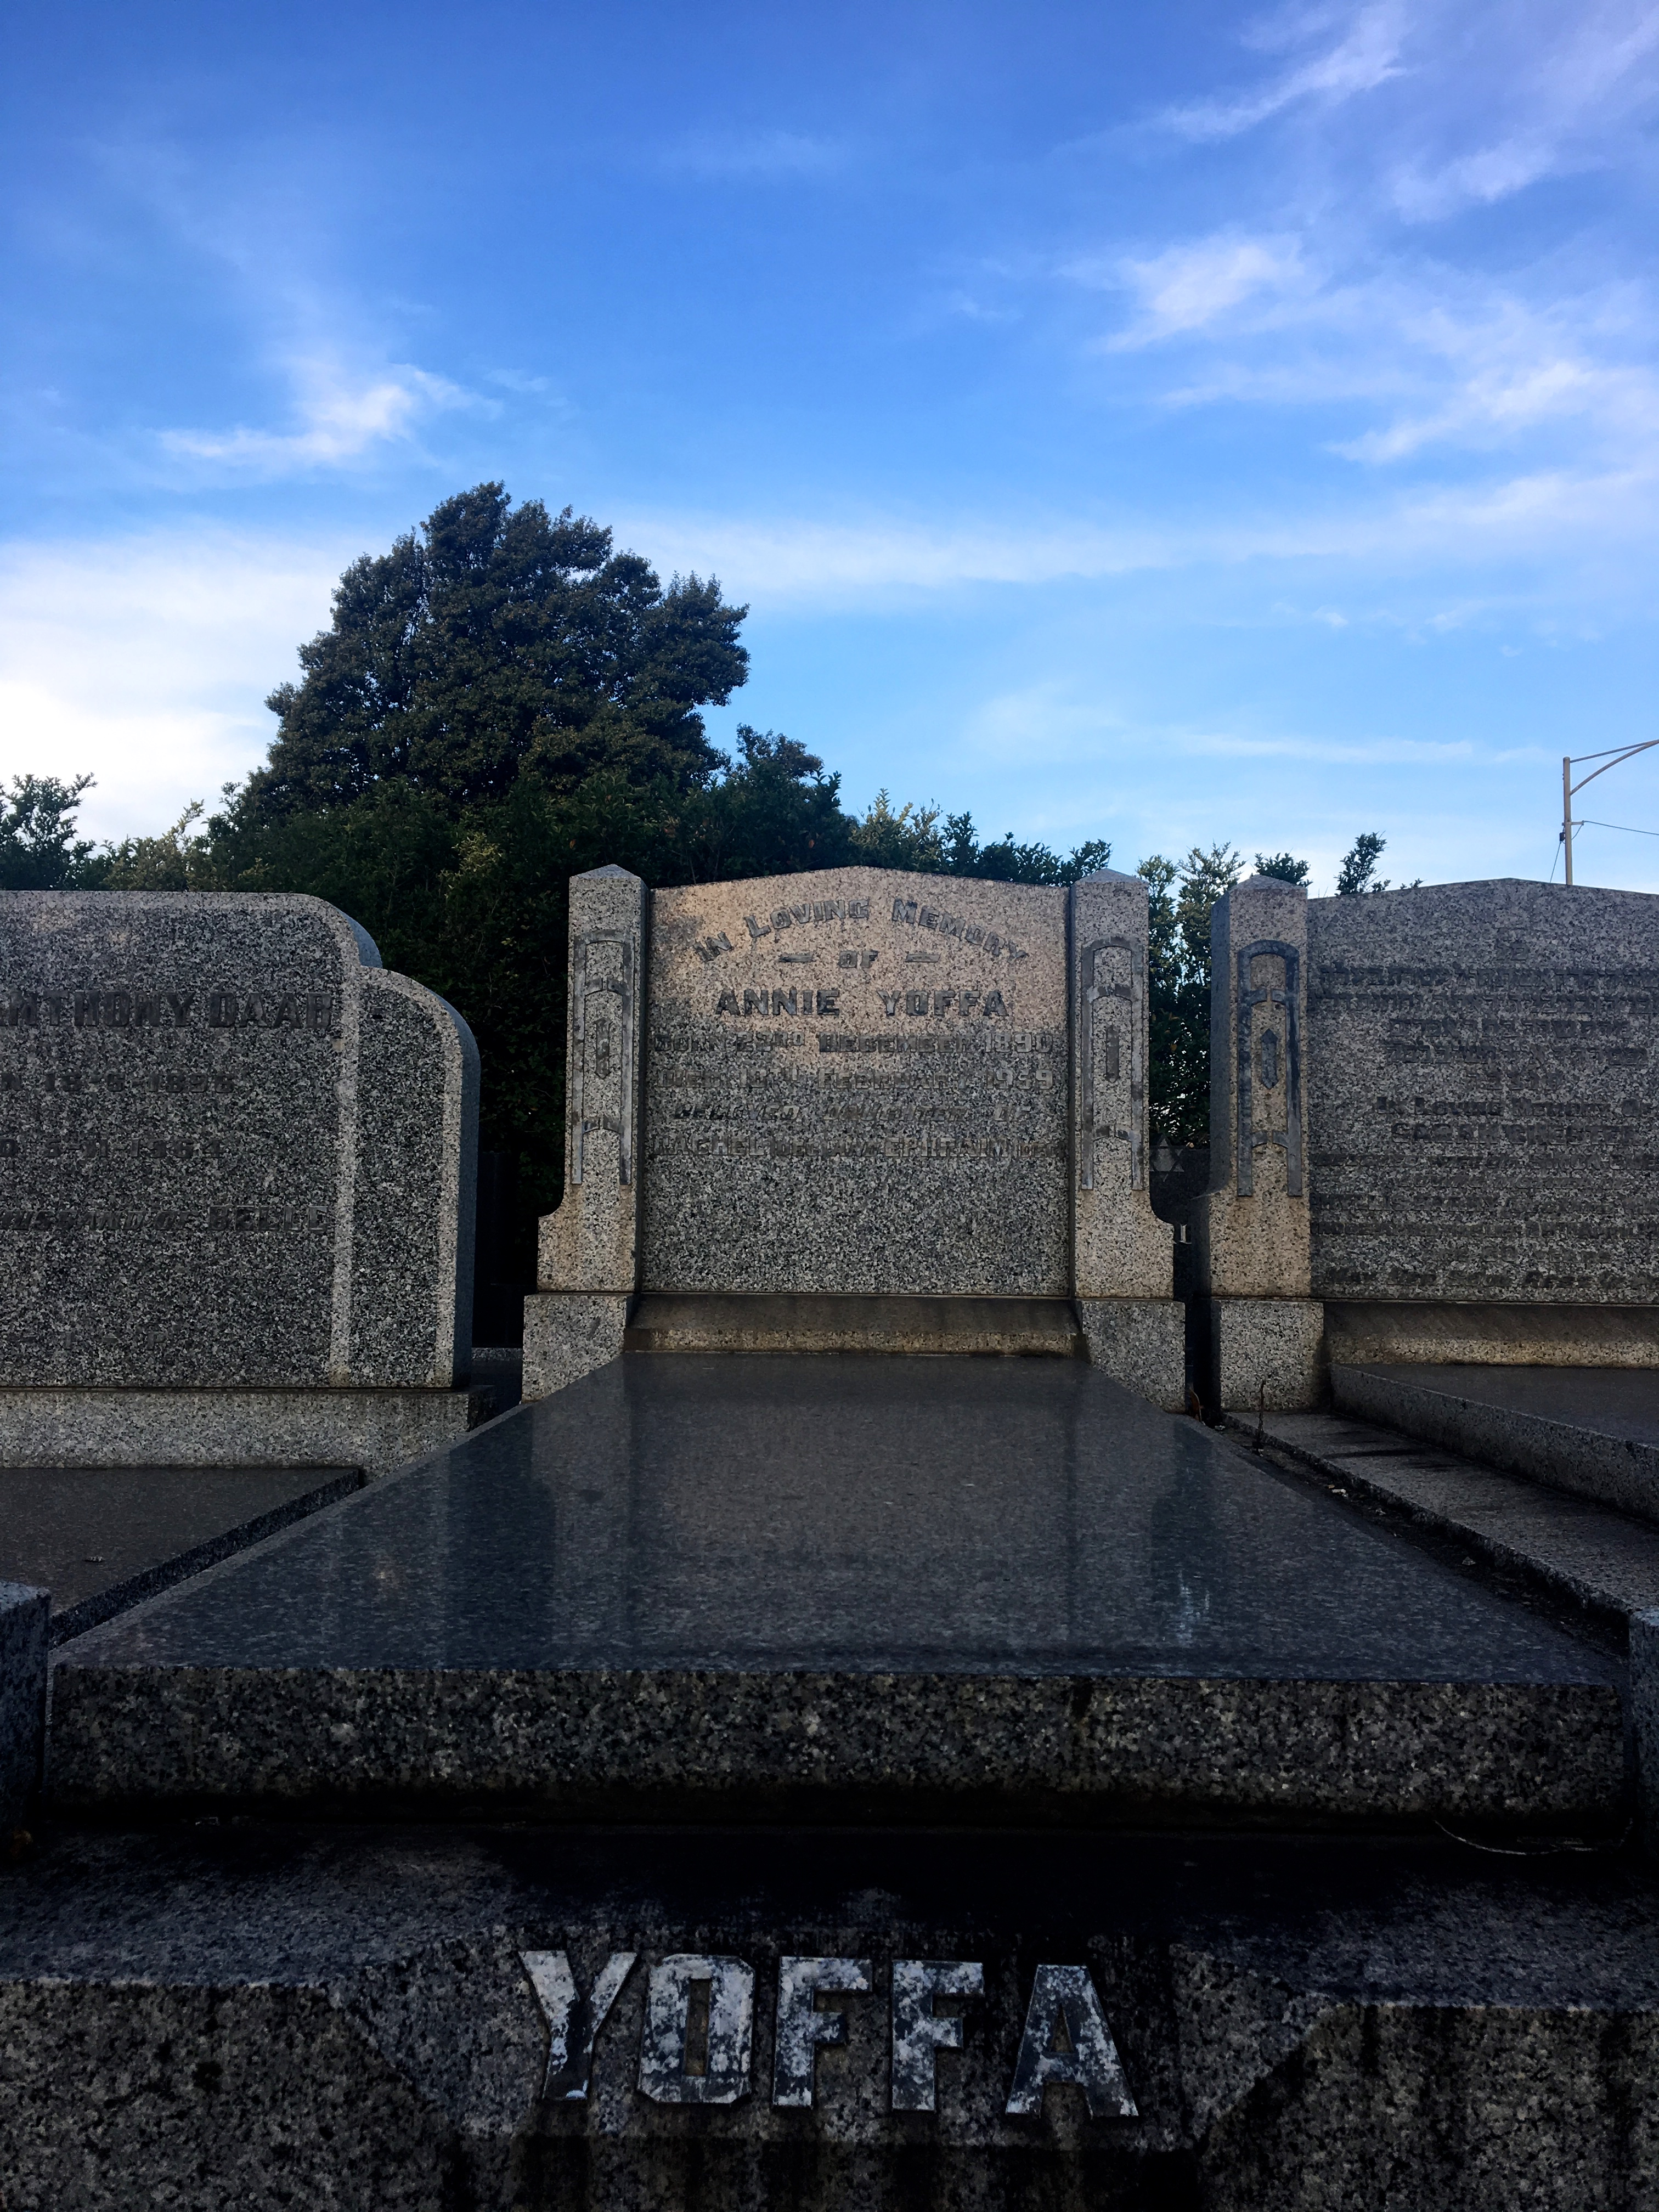 Dr Annie Yoffa's grave at the Melbourne General Cemetery.